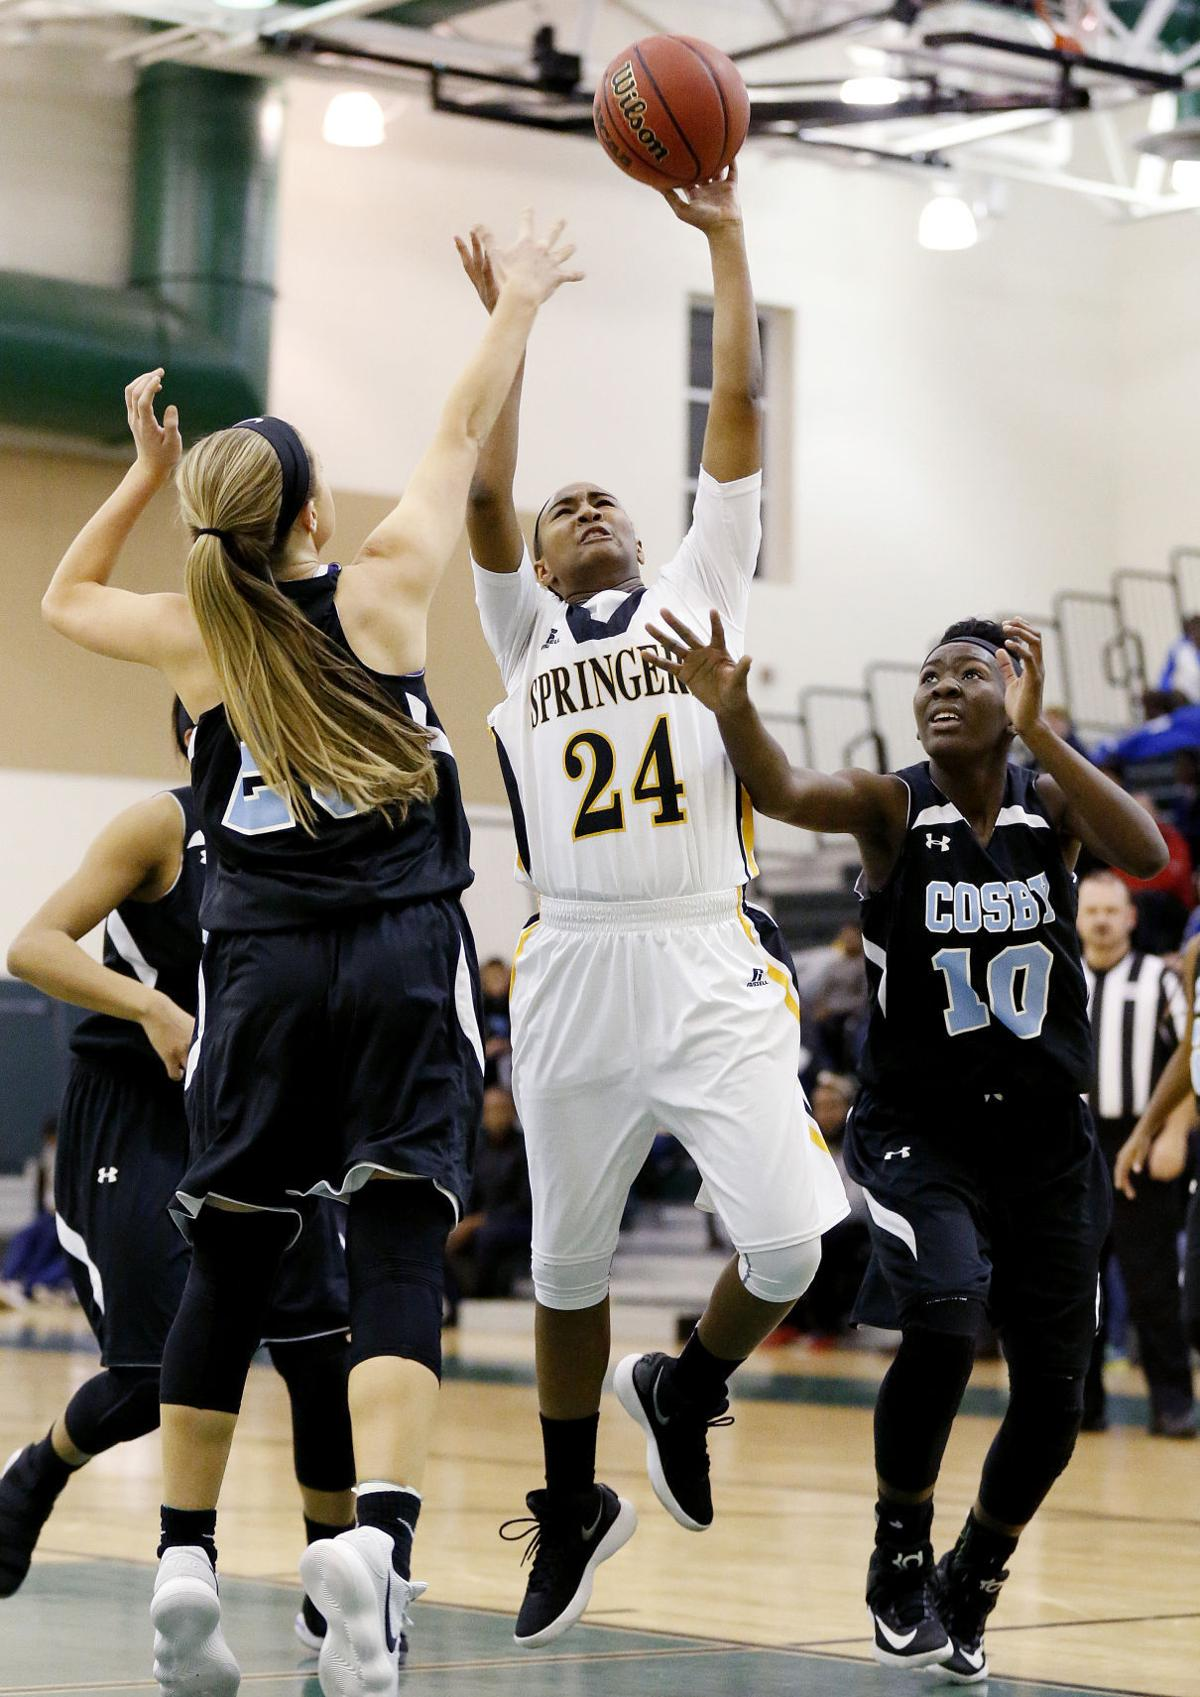 TDIT girls semifinal games: Highland Springs vs. Cosby